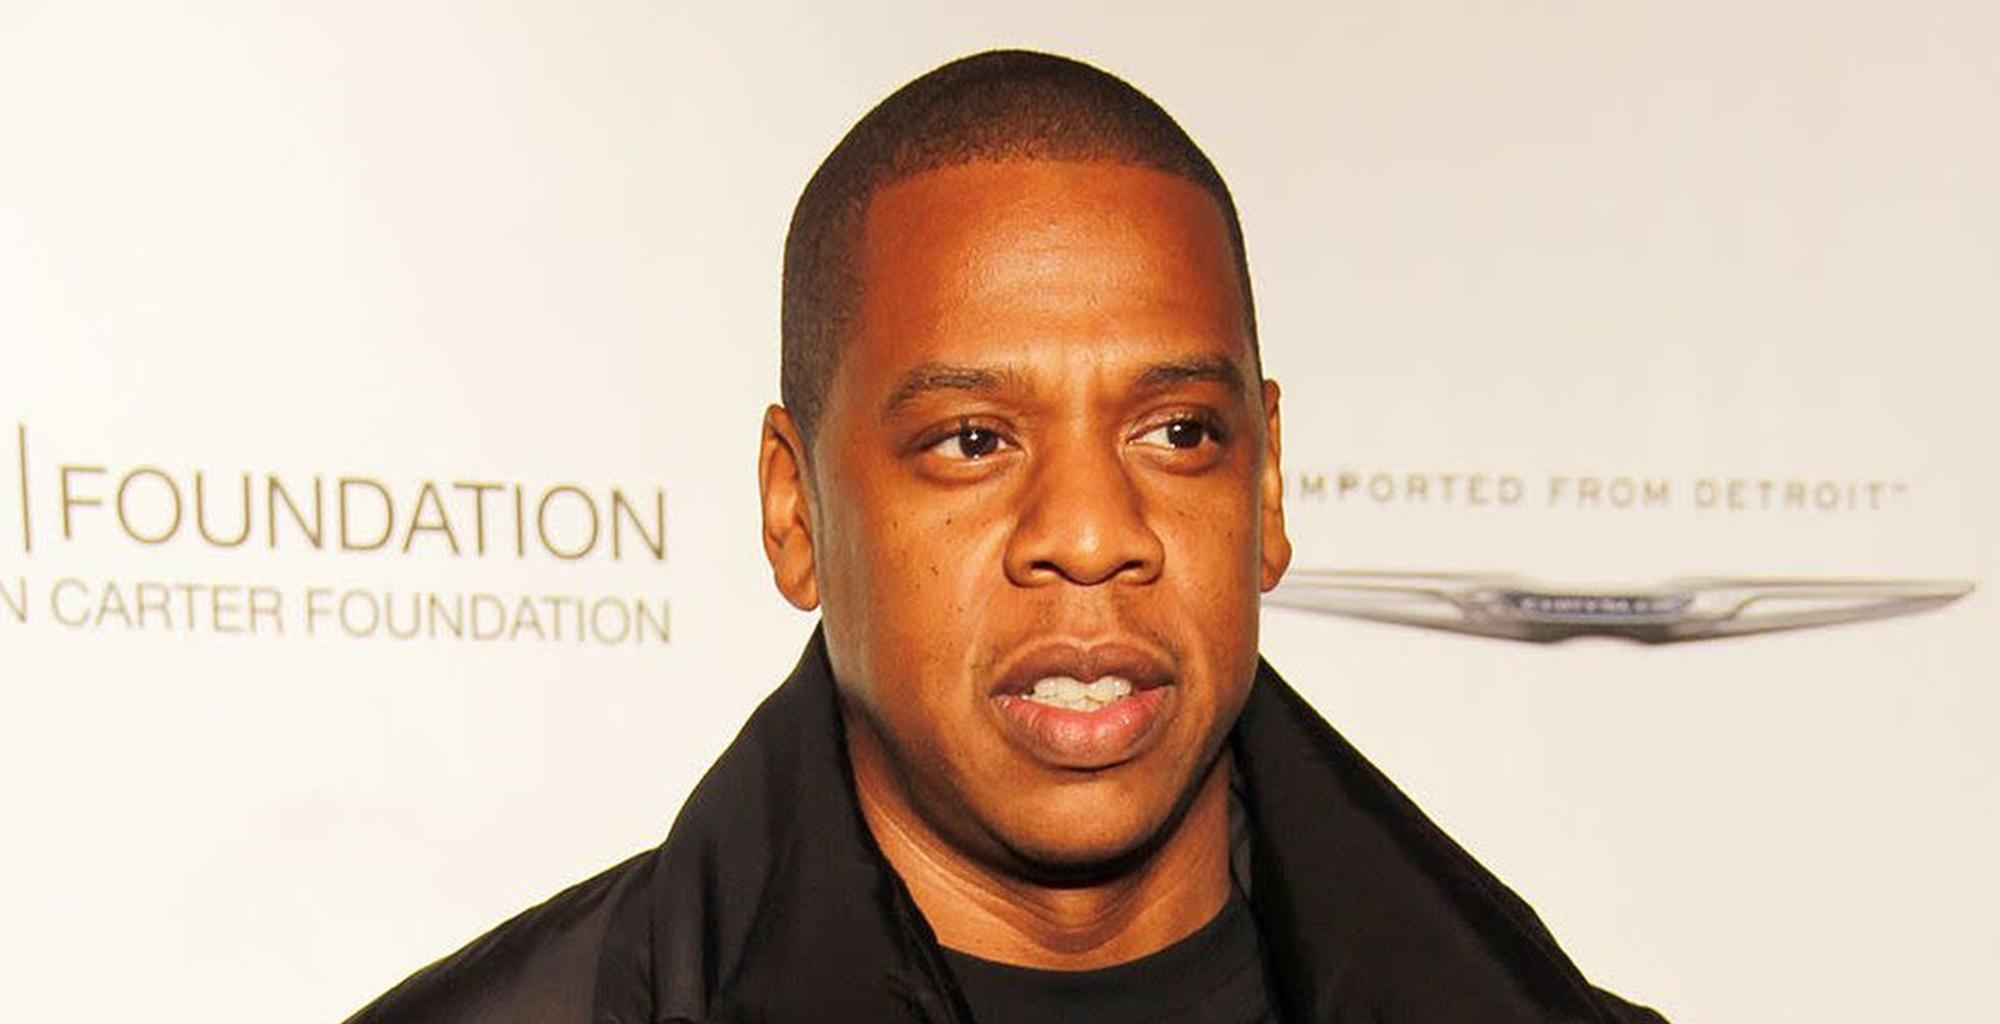 Jay-Z's Former Friend And Associate Claims He Was Abandoned By Him